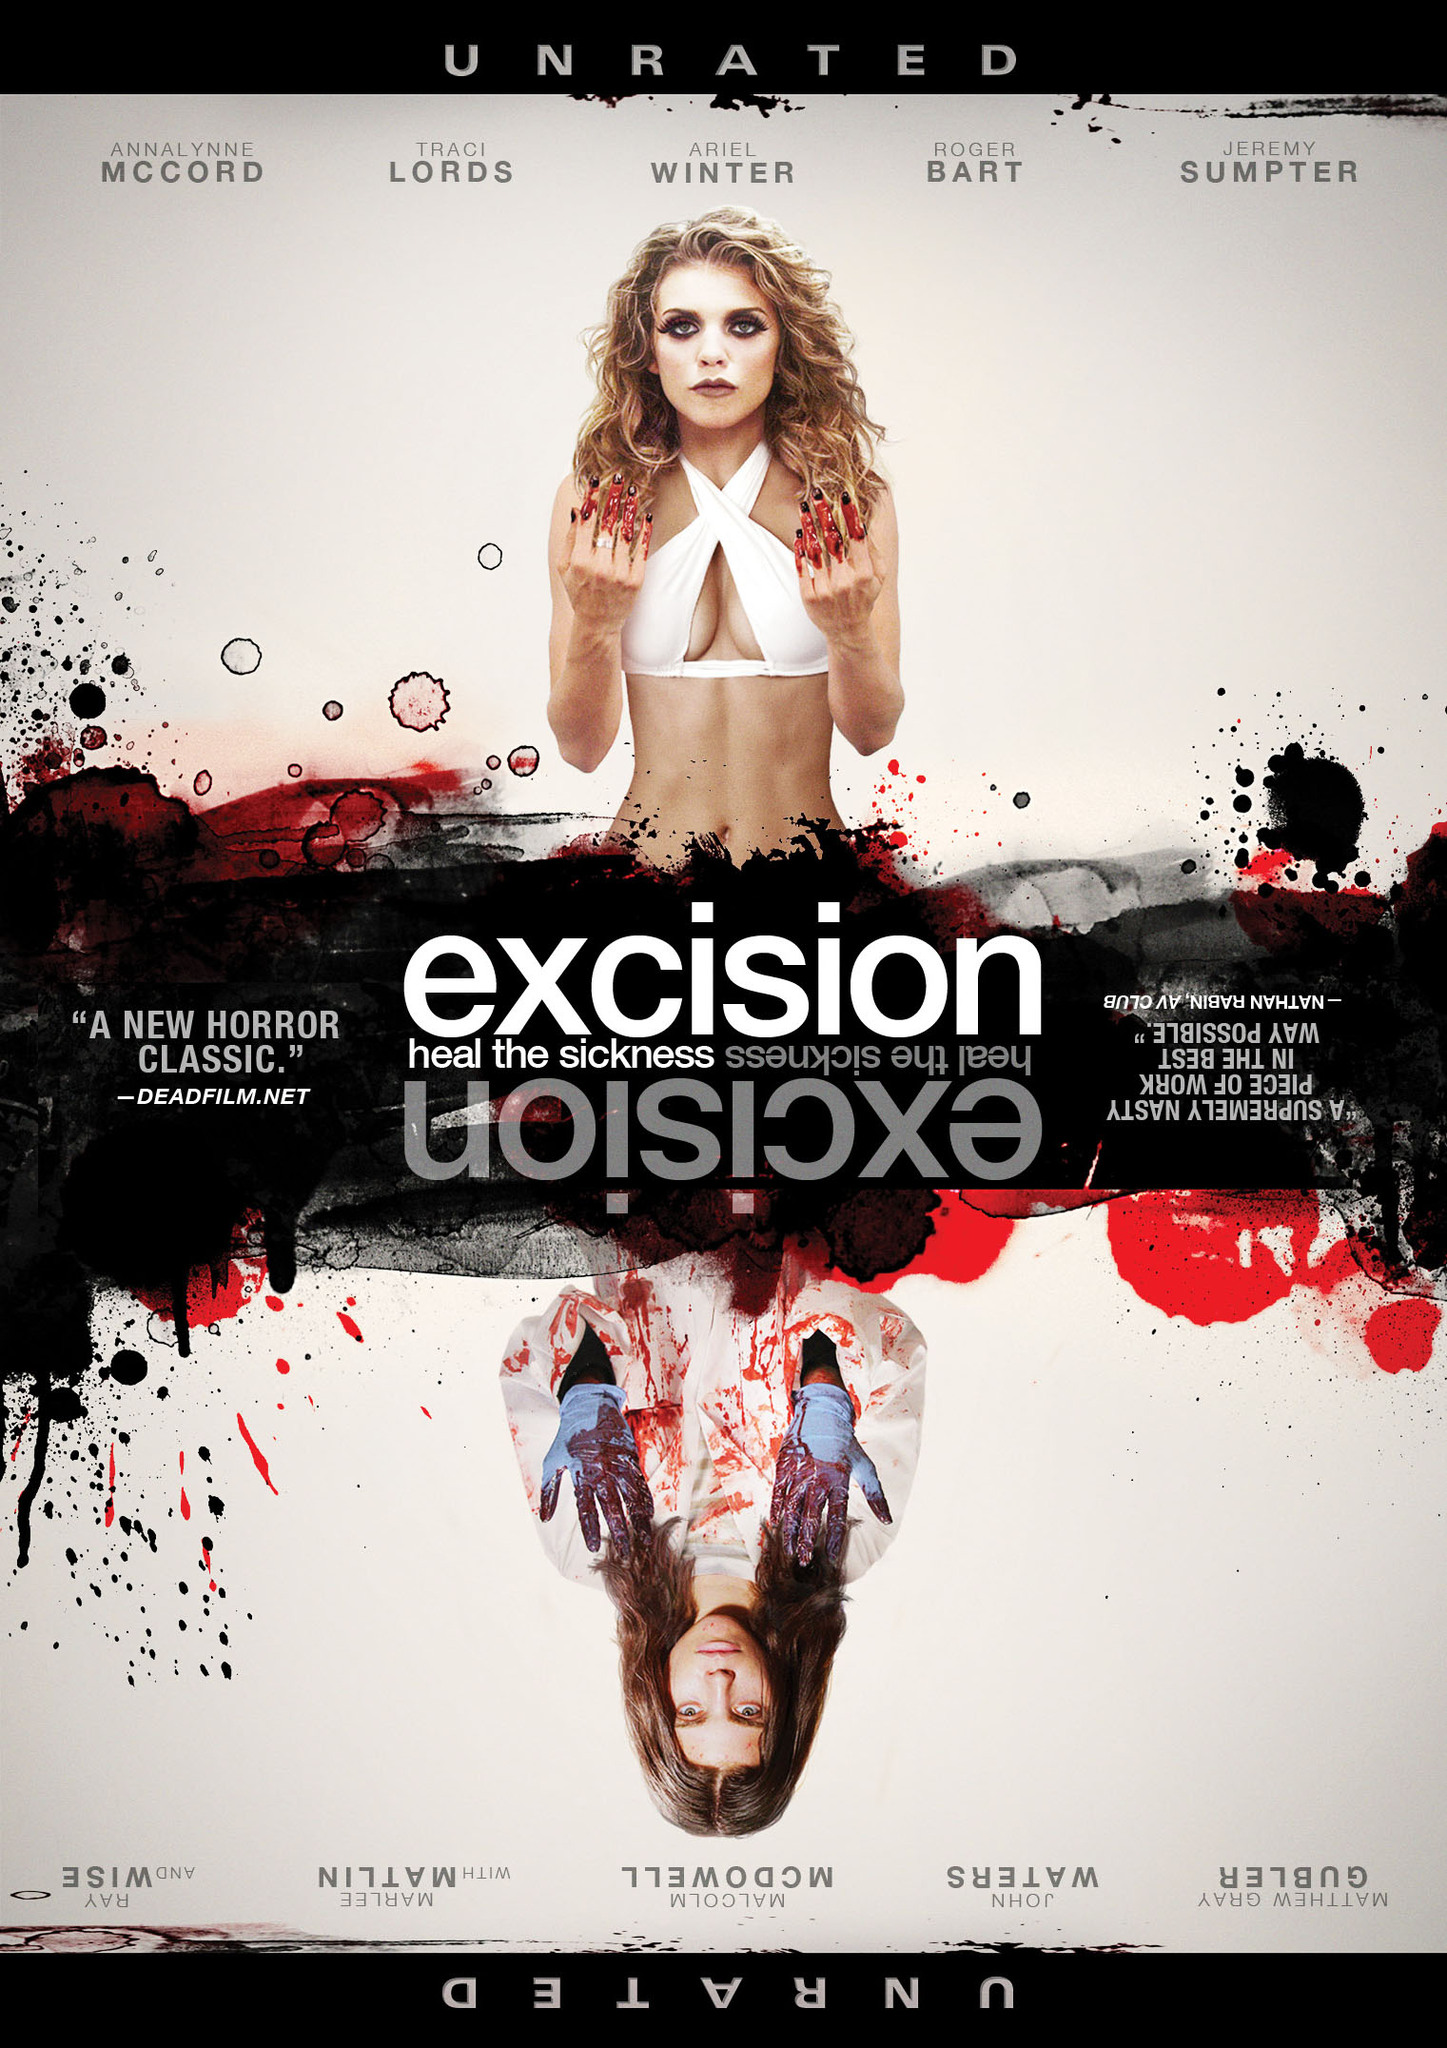 18+ Excision 2021 Hindi Hot Movie 720p UNRATED BluRay ESubs 700MB x264 AAC